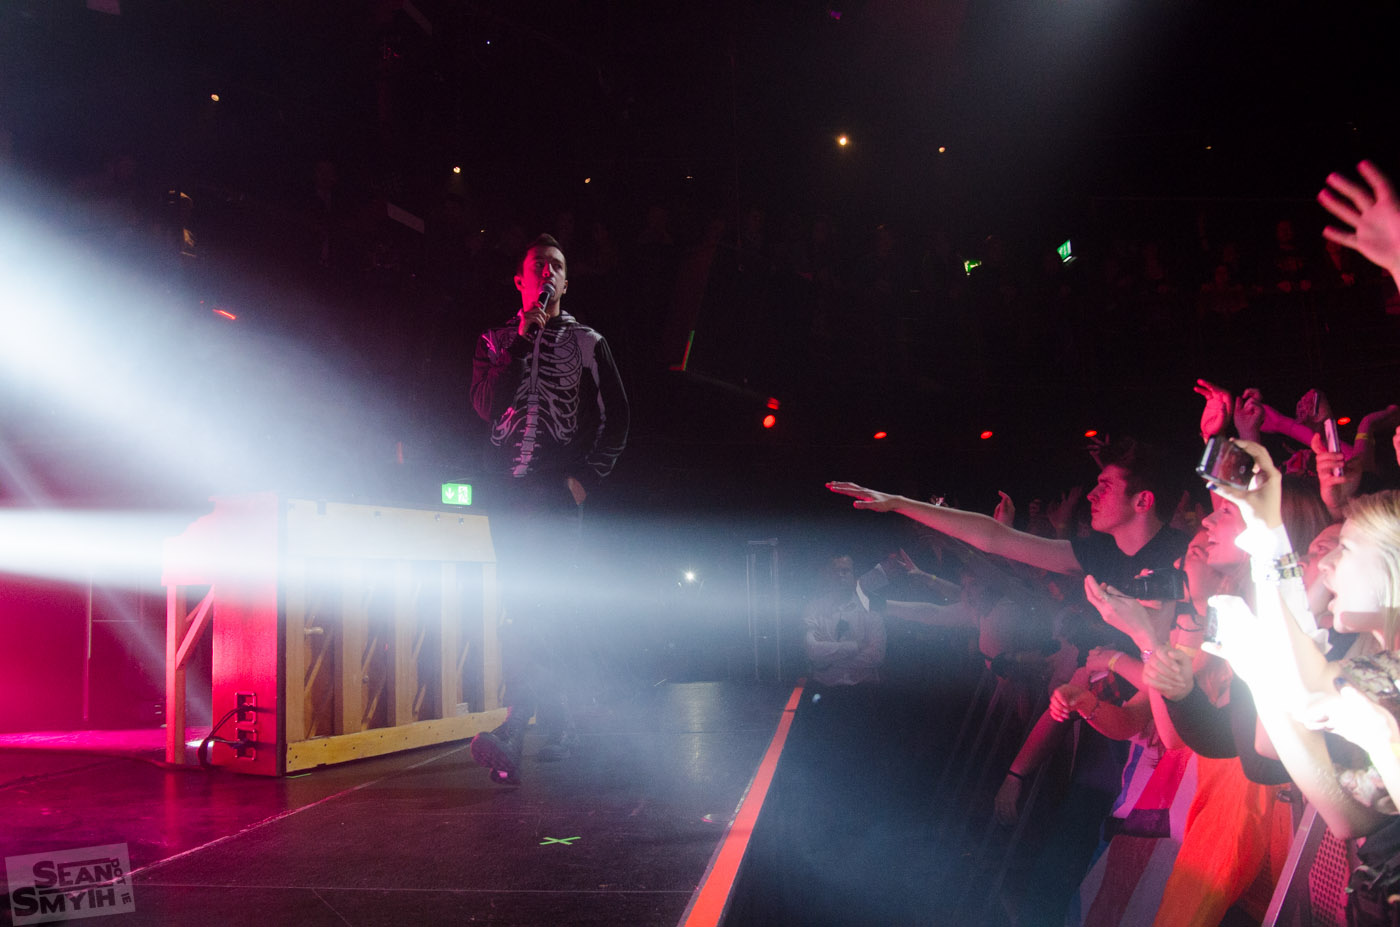 twenty-one-pilots-at-the-academy-by-sean-smyth-16-11-14-33-of-41_15621626967_o